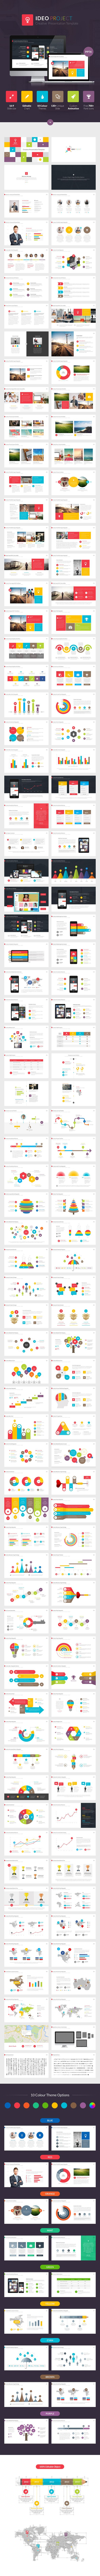 Ideo Powerpoint Presentation Template (Powerpoint Templates) Ideo 20Presentation